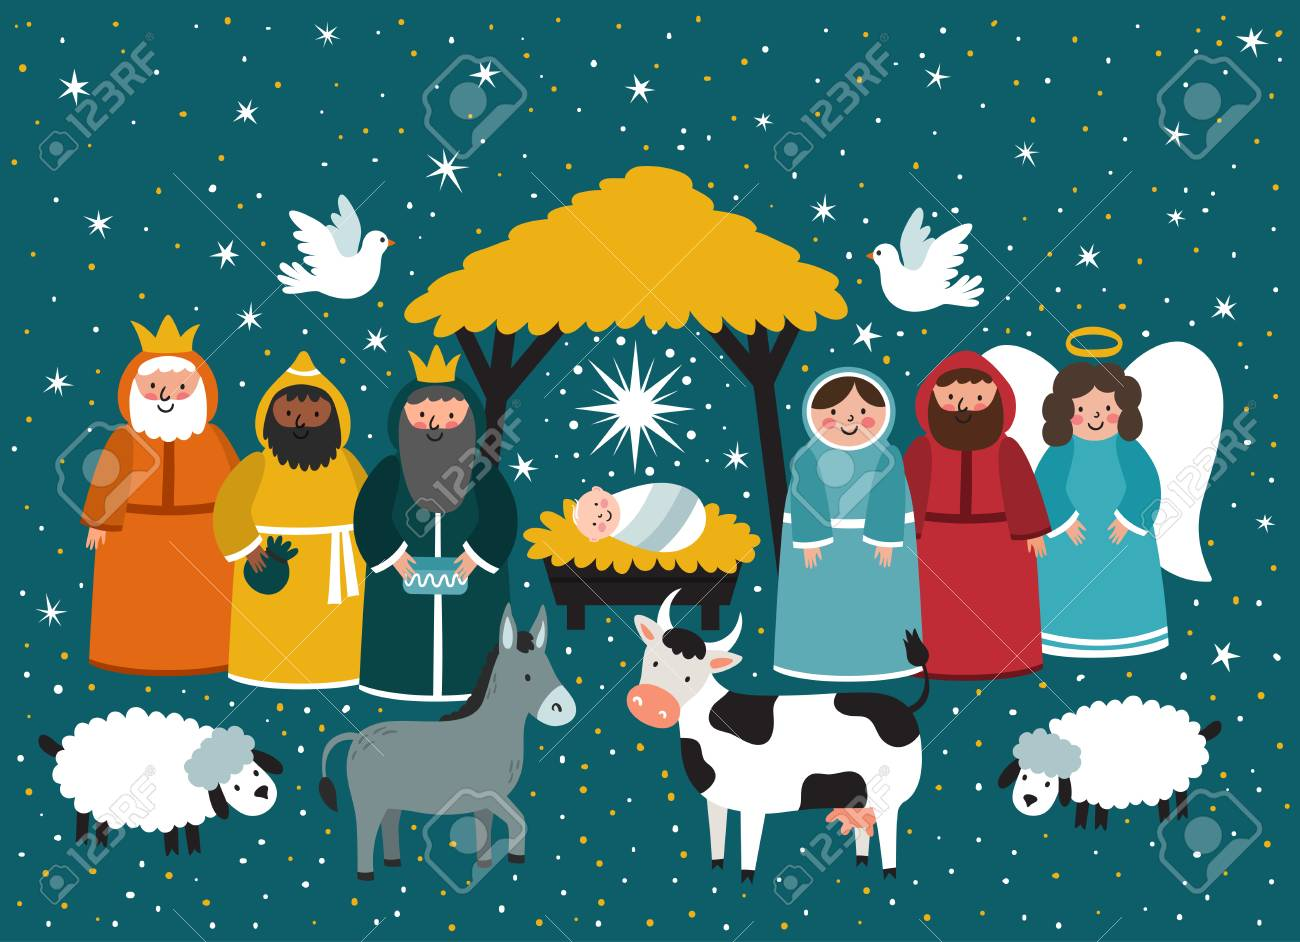 Christmas Jesus Birth Images.Traditional Christmas Scene Vector Background With Nativity